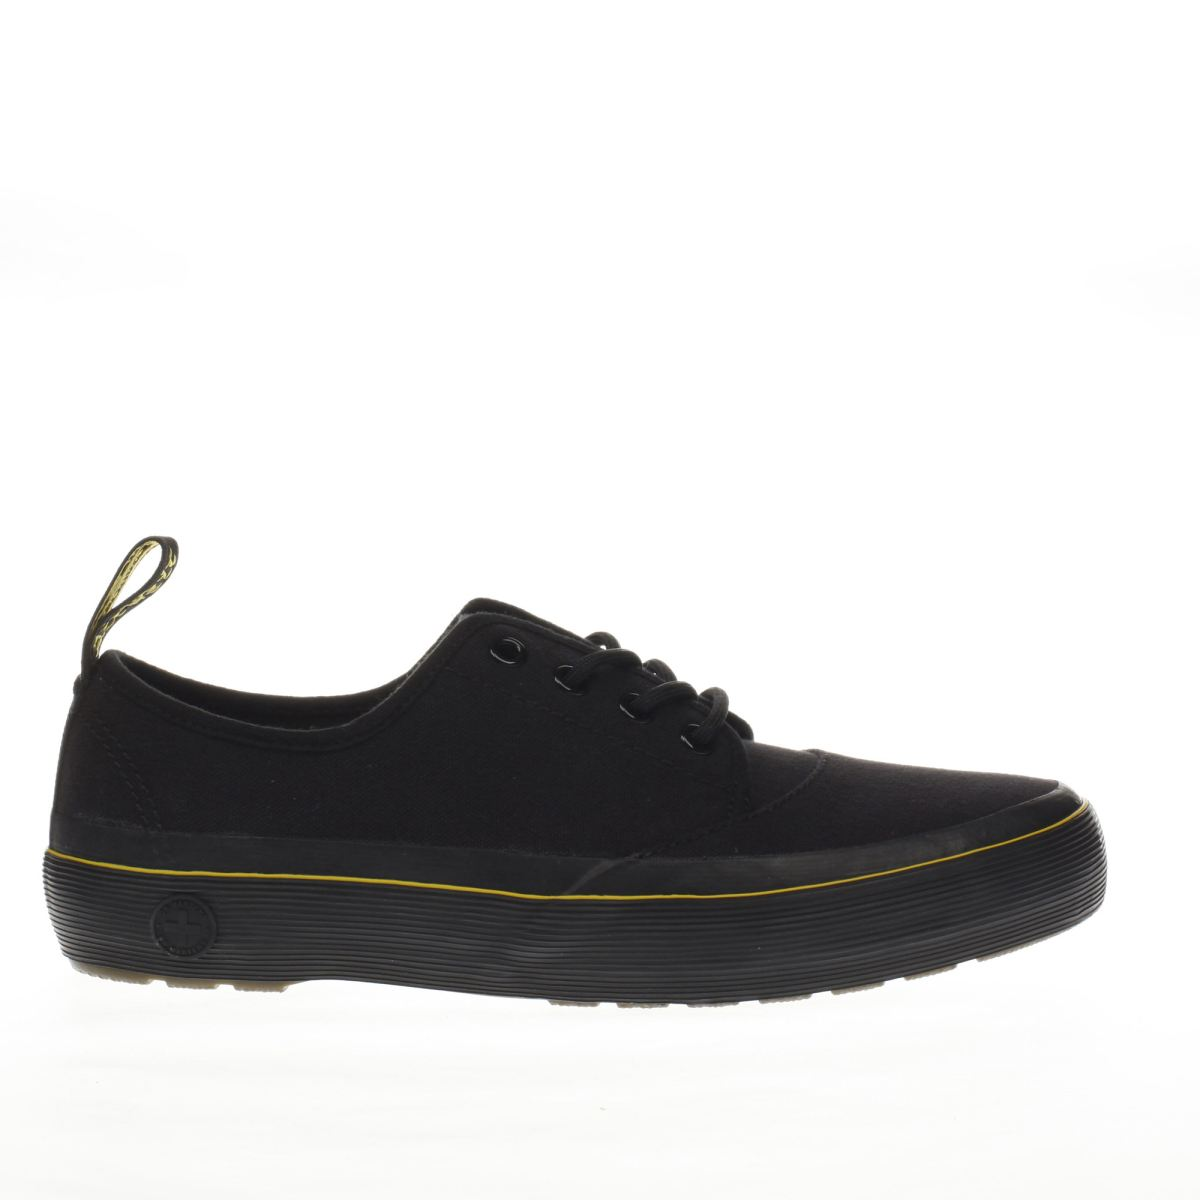 dr martens black jacy 4 eye lace flat shoes